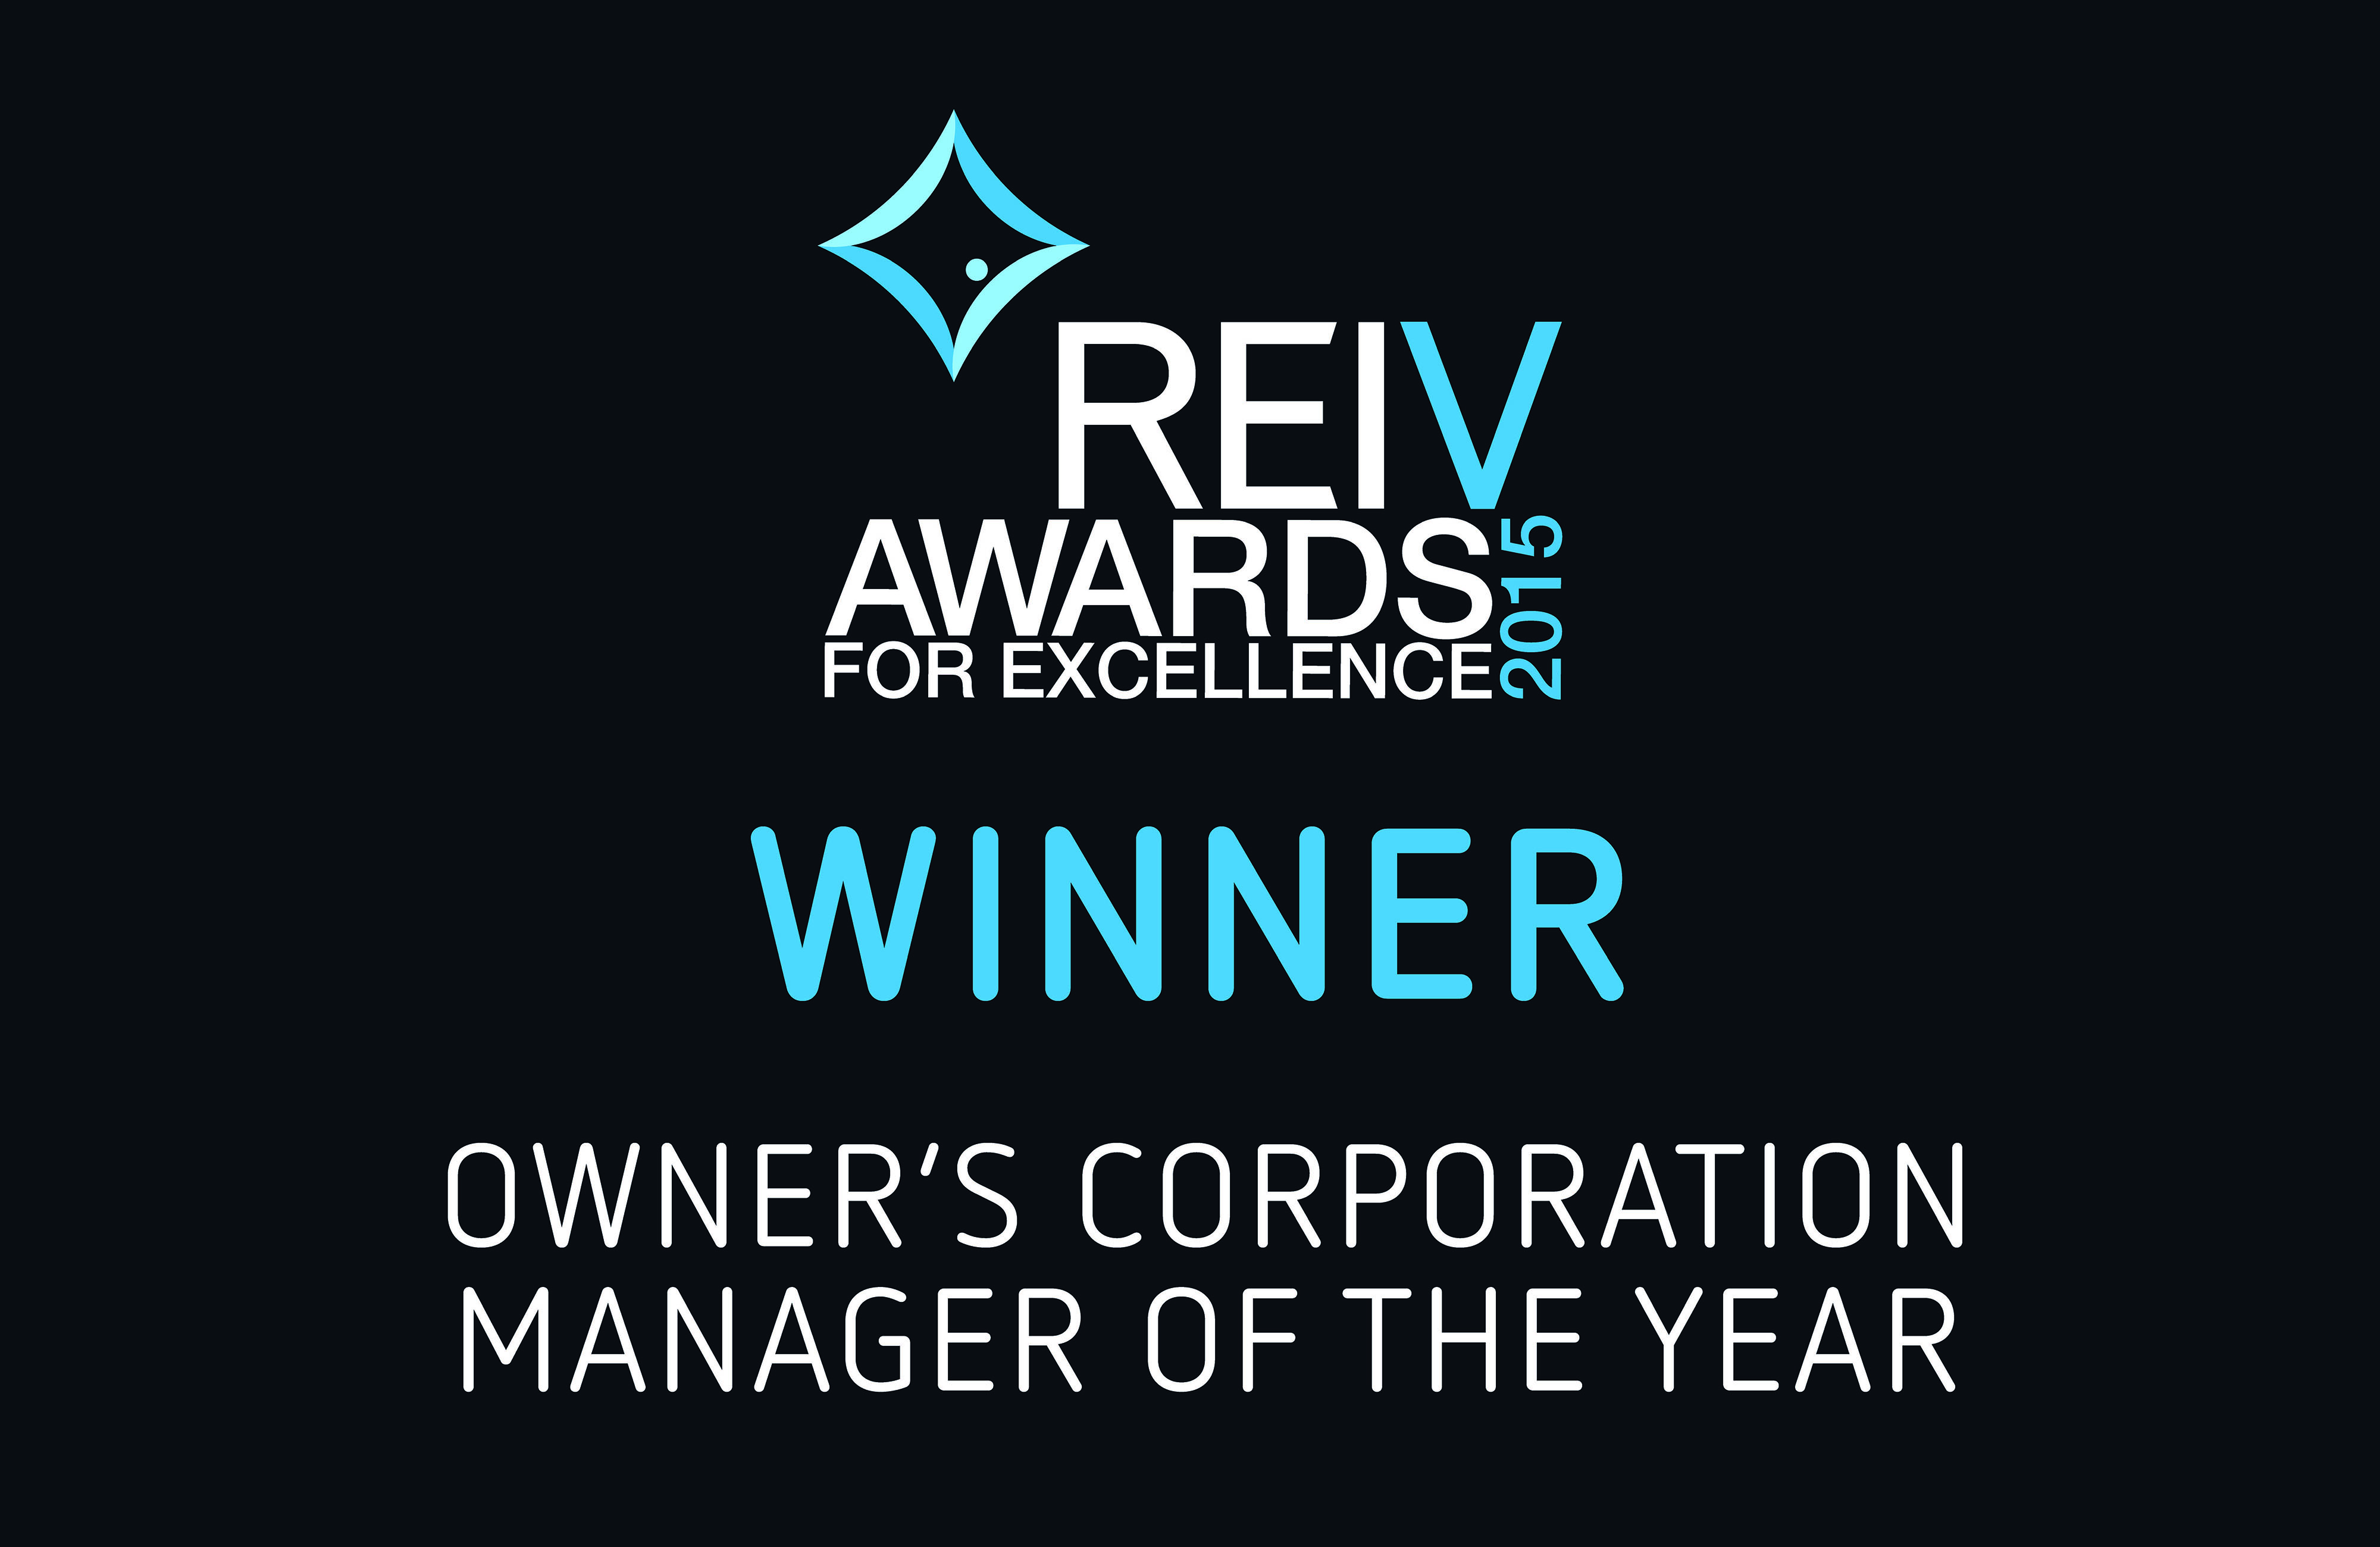 2015 - REIV Owners Corporation Manager of the Year - Ronald Perera